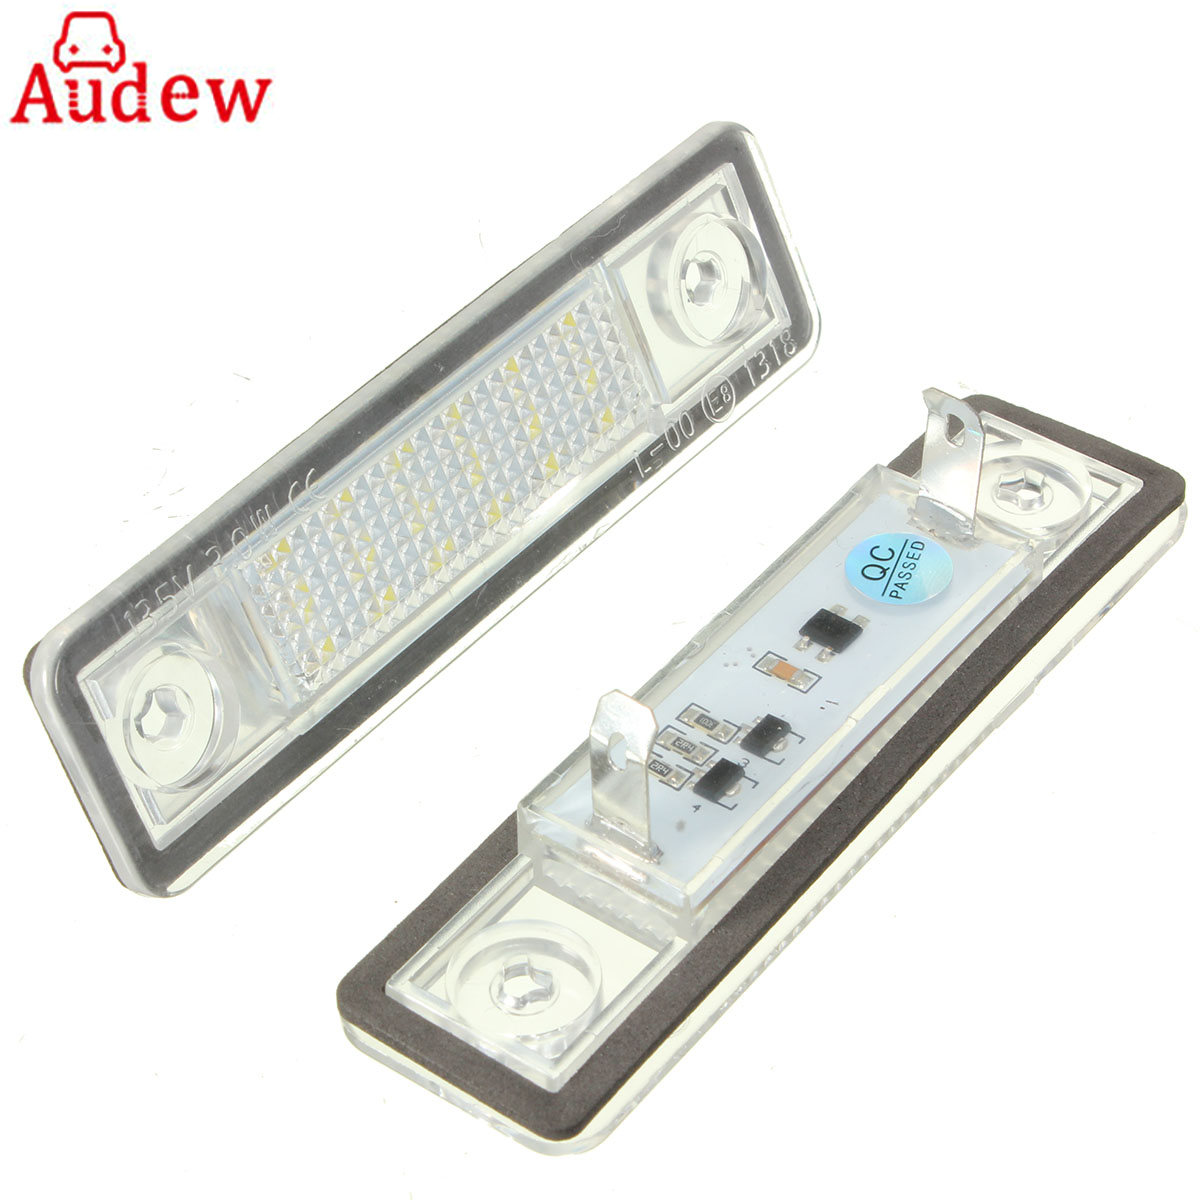 2Pcs Car LED License Plate Lights 12V White Number Plate Lamp For Vauxhall For Opel/Corsa/Astra/Omega led lamps lights white plate vauxhall opel corsa astra insignia vectra